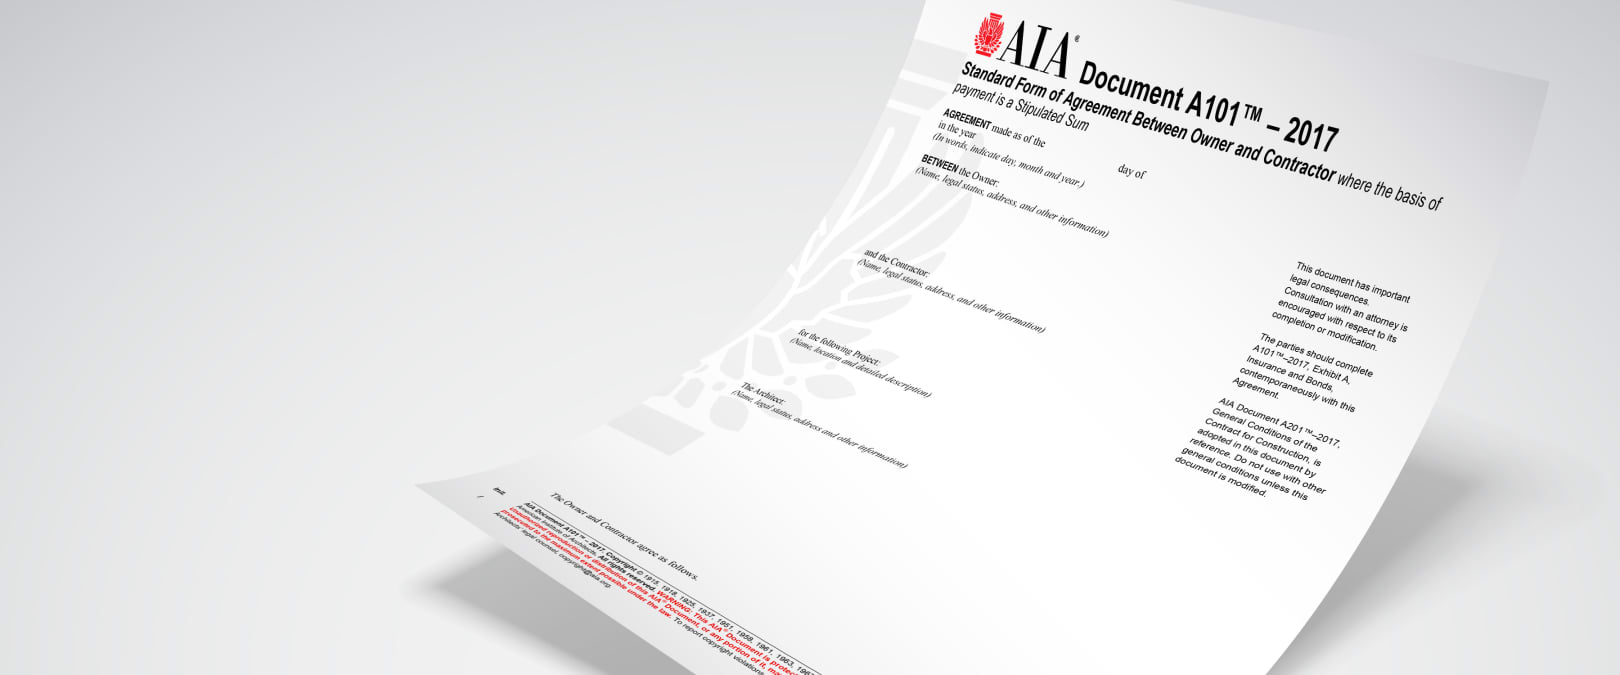 Fundraising contract template awesome aia contract forms fresh.